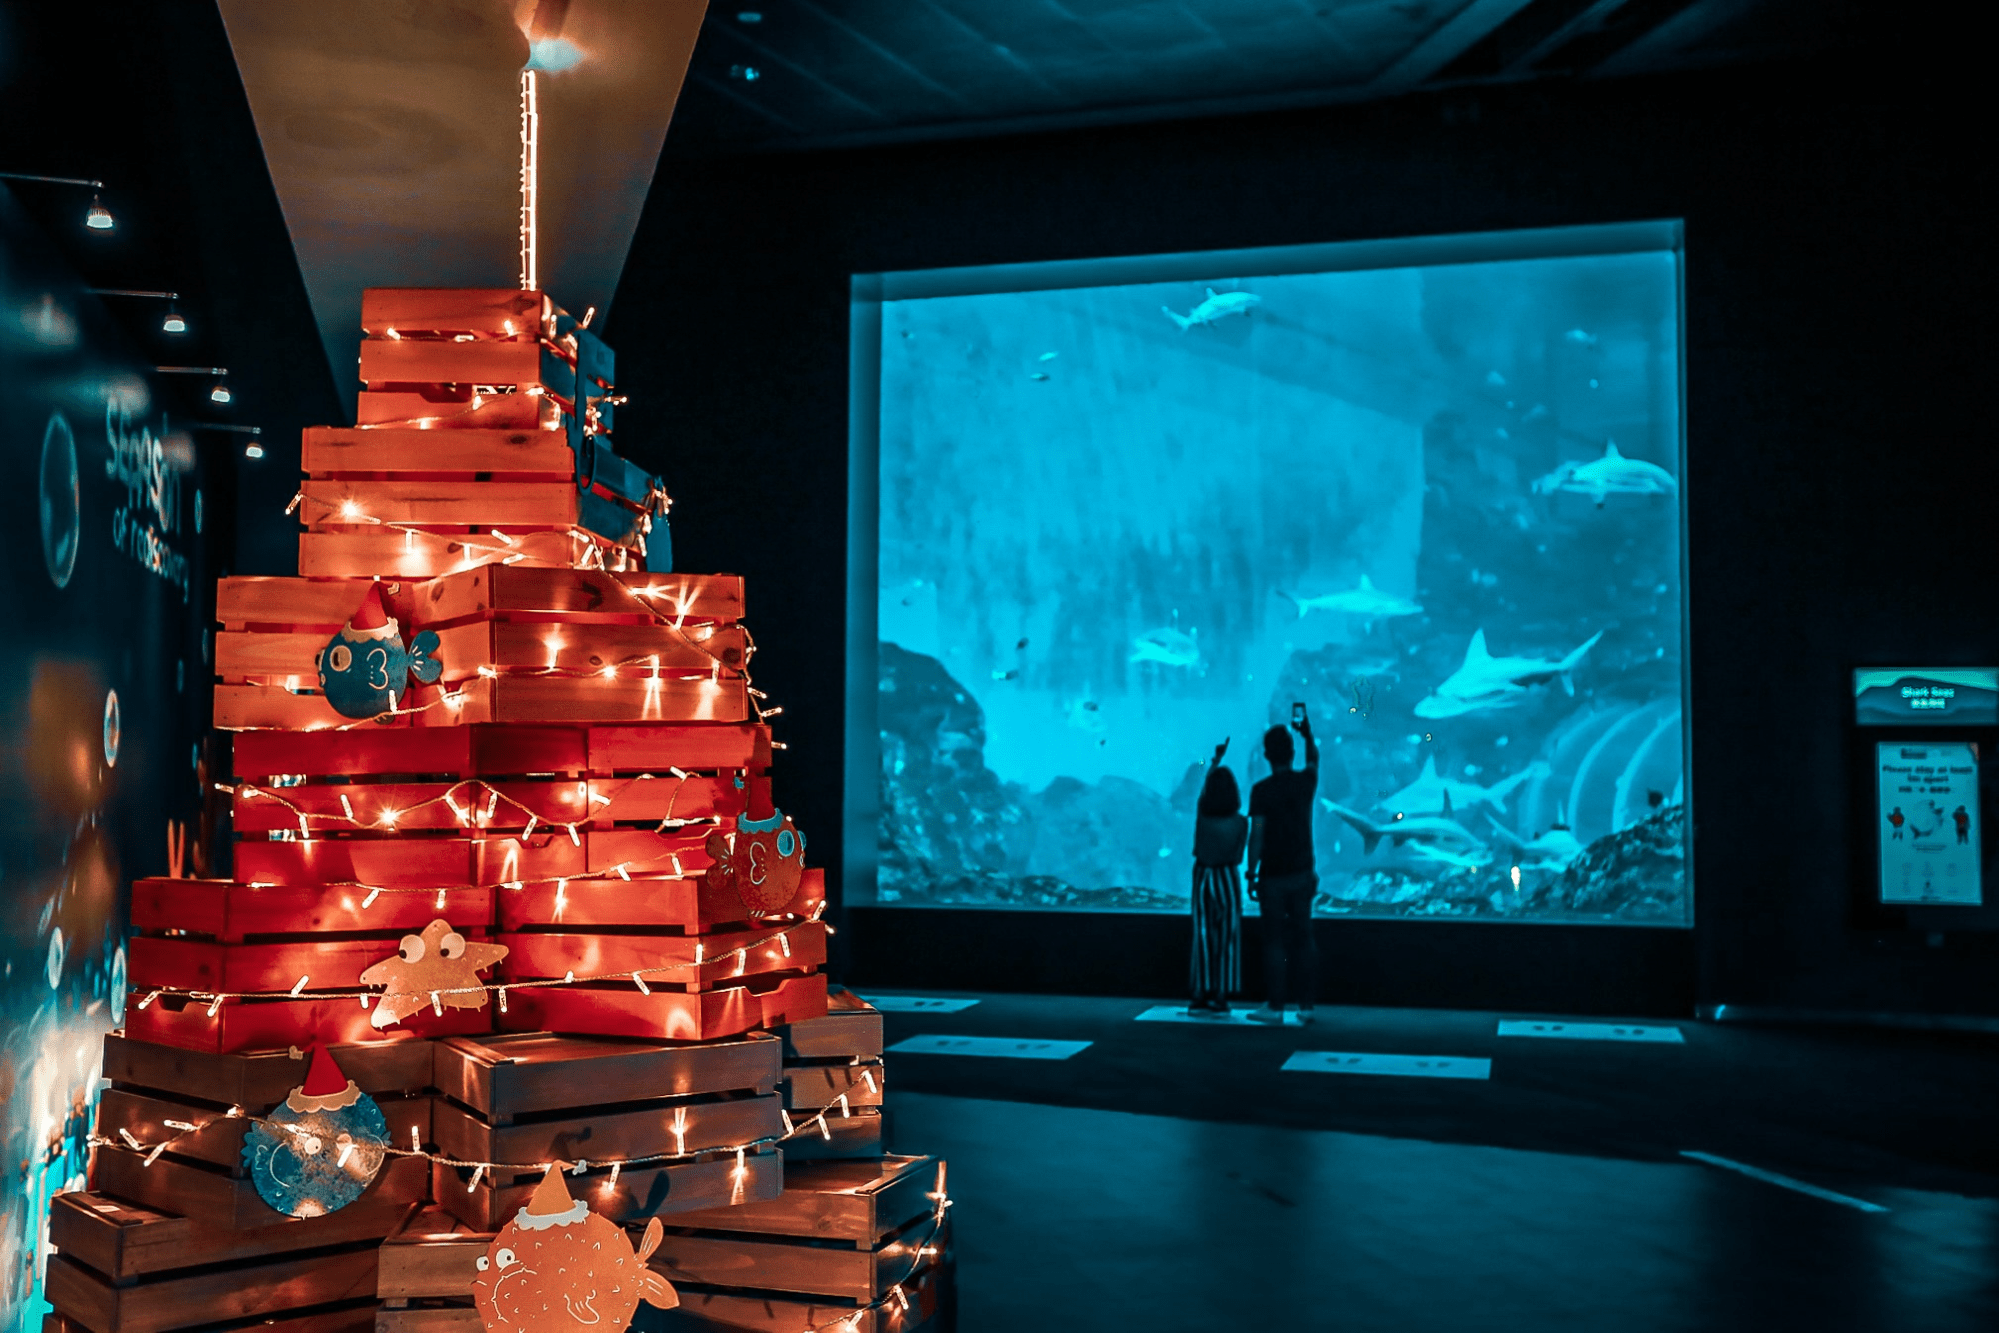 sea aquarium seaason of rediscovery, things to do december 2020